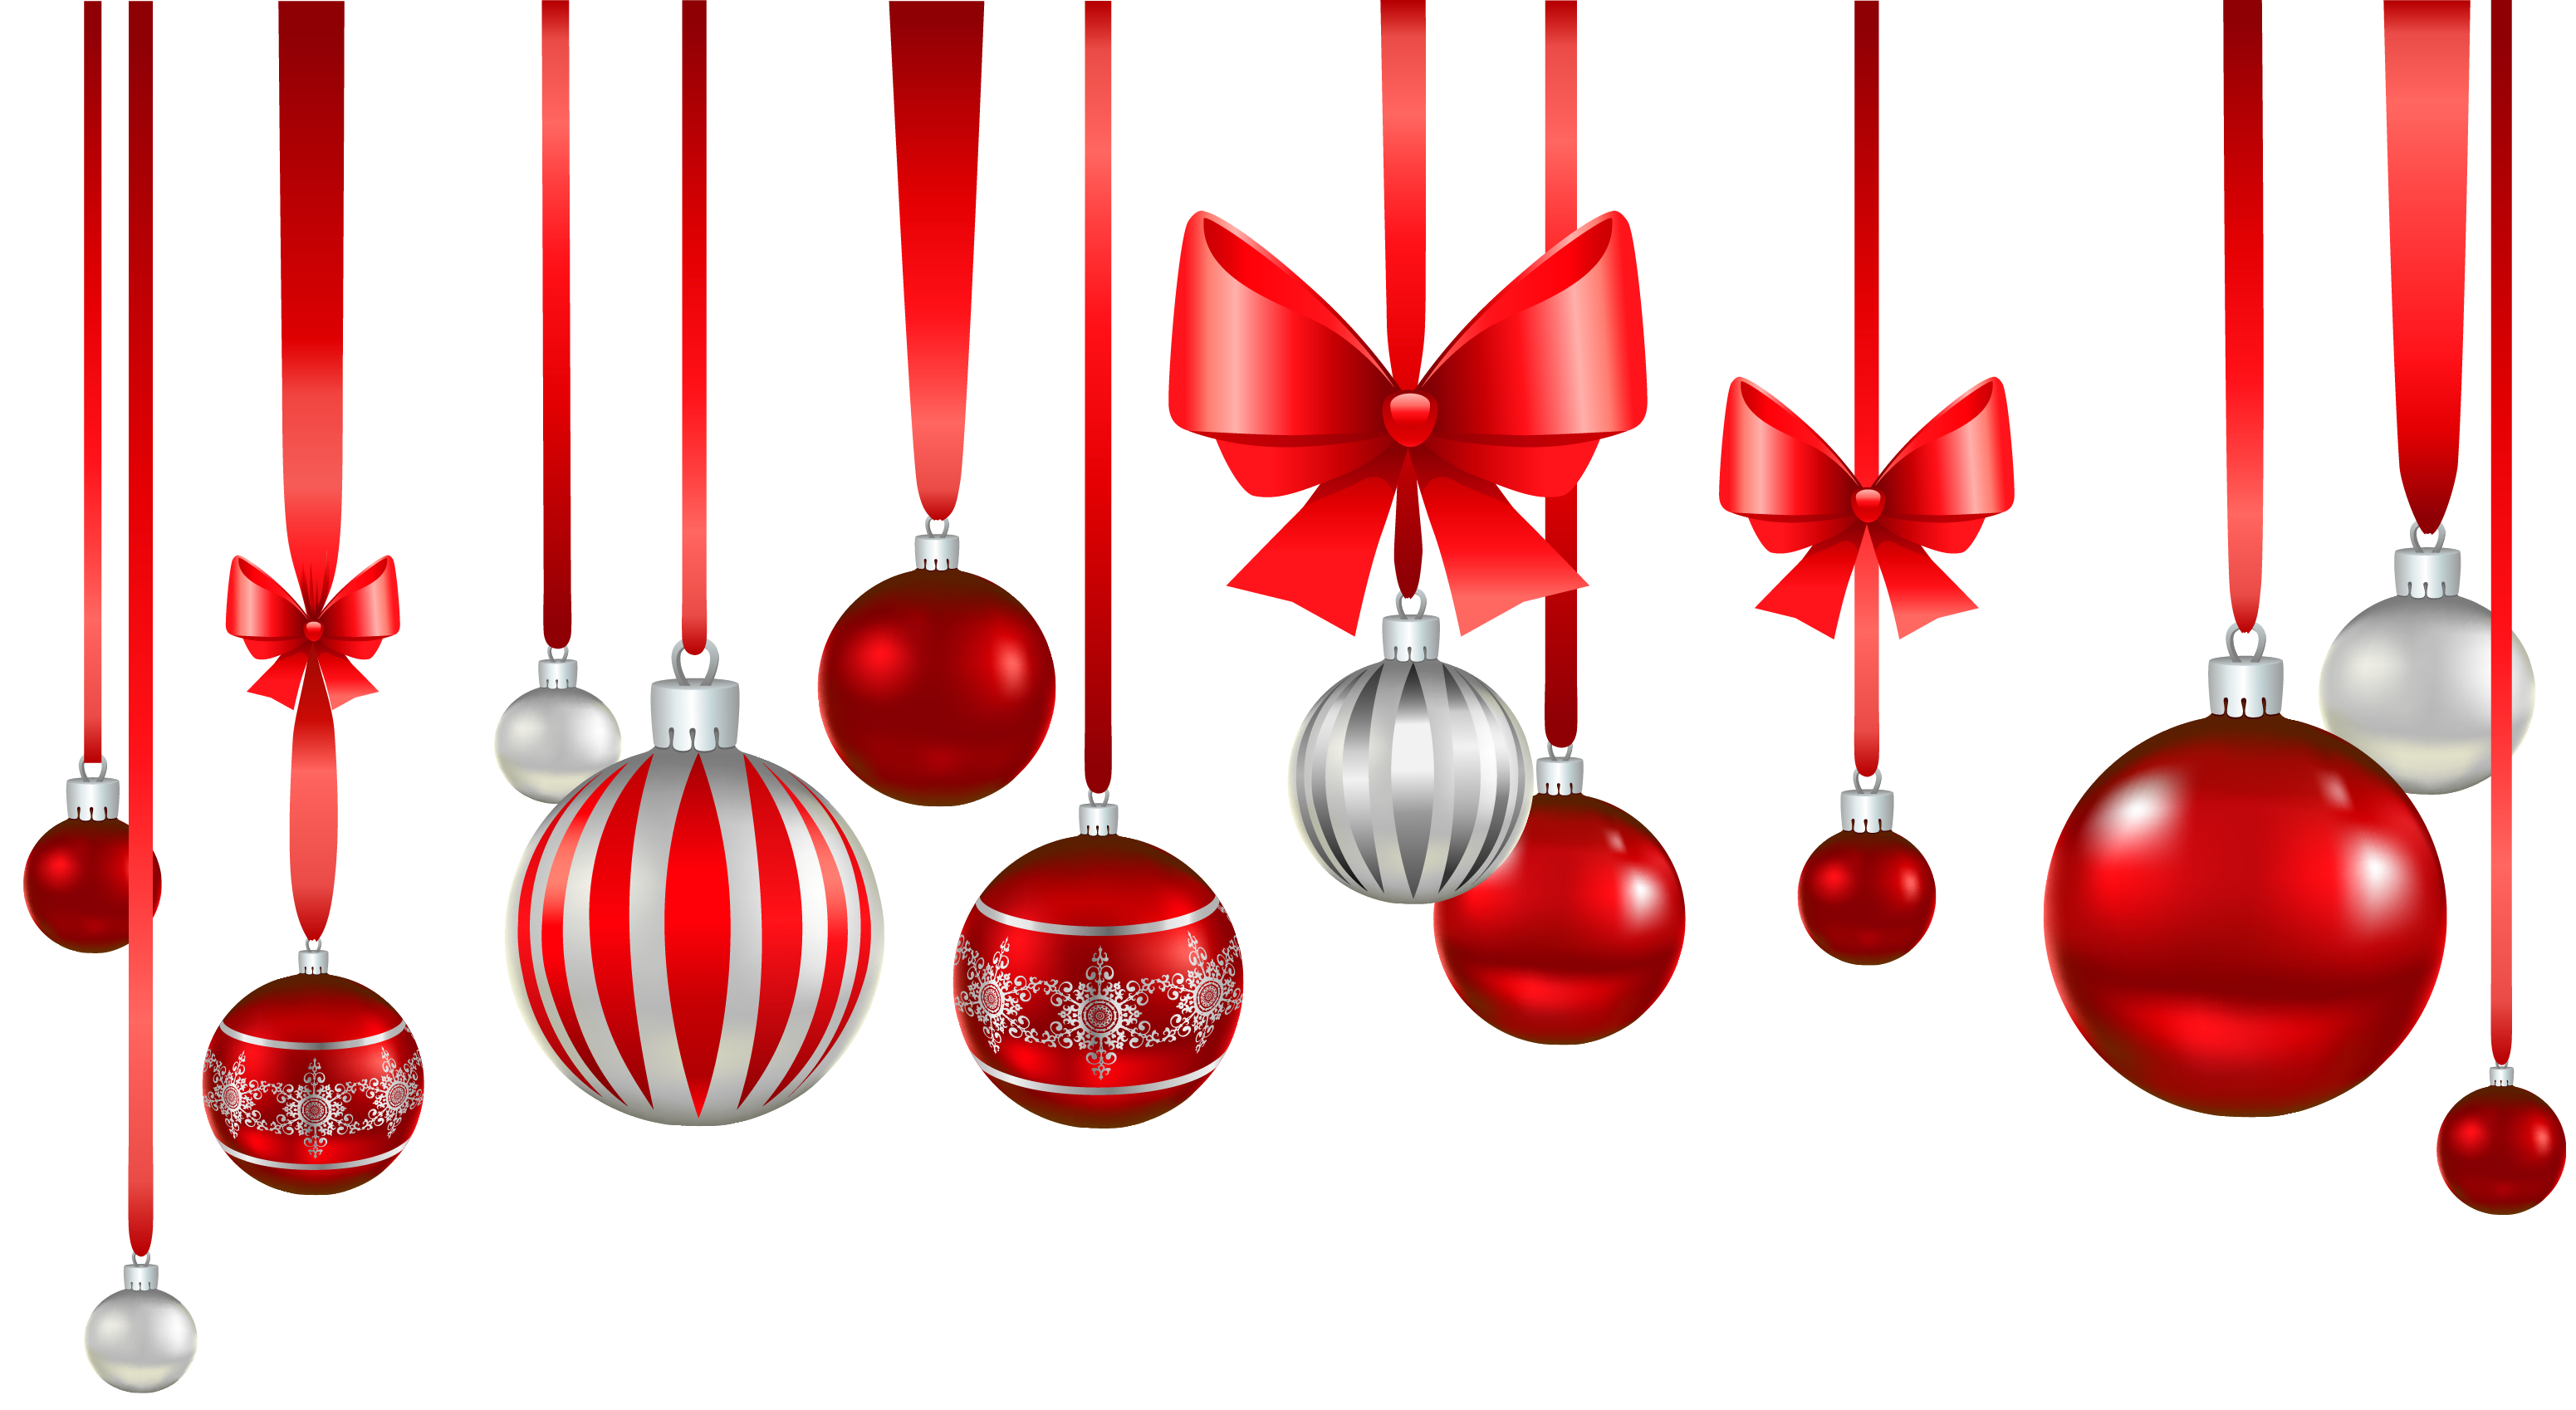 download christmas ornament png images transparent gallery advertisement christmas ornament png - Christmas Decorations Clearance Online